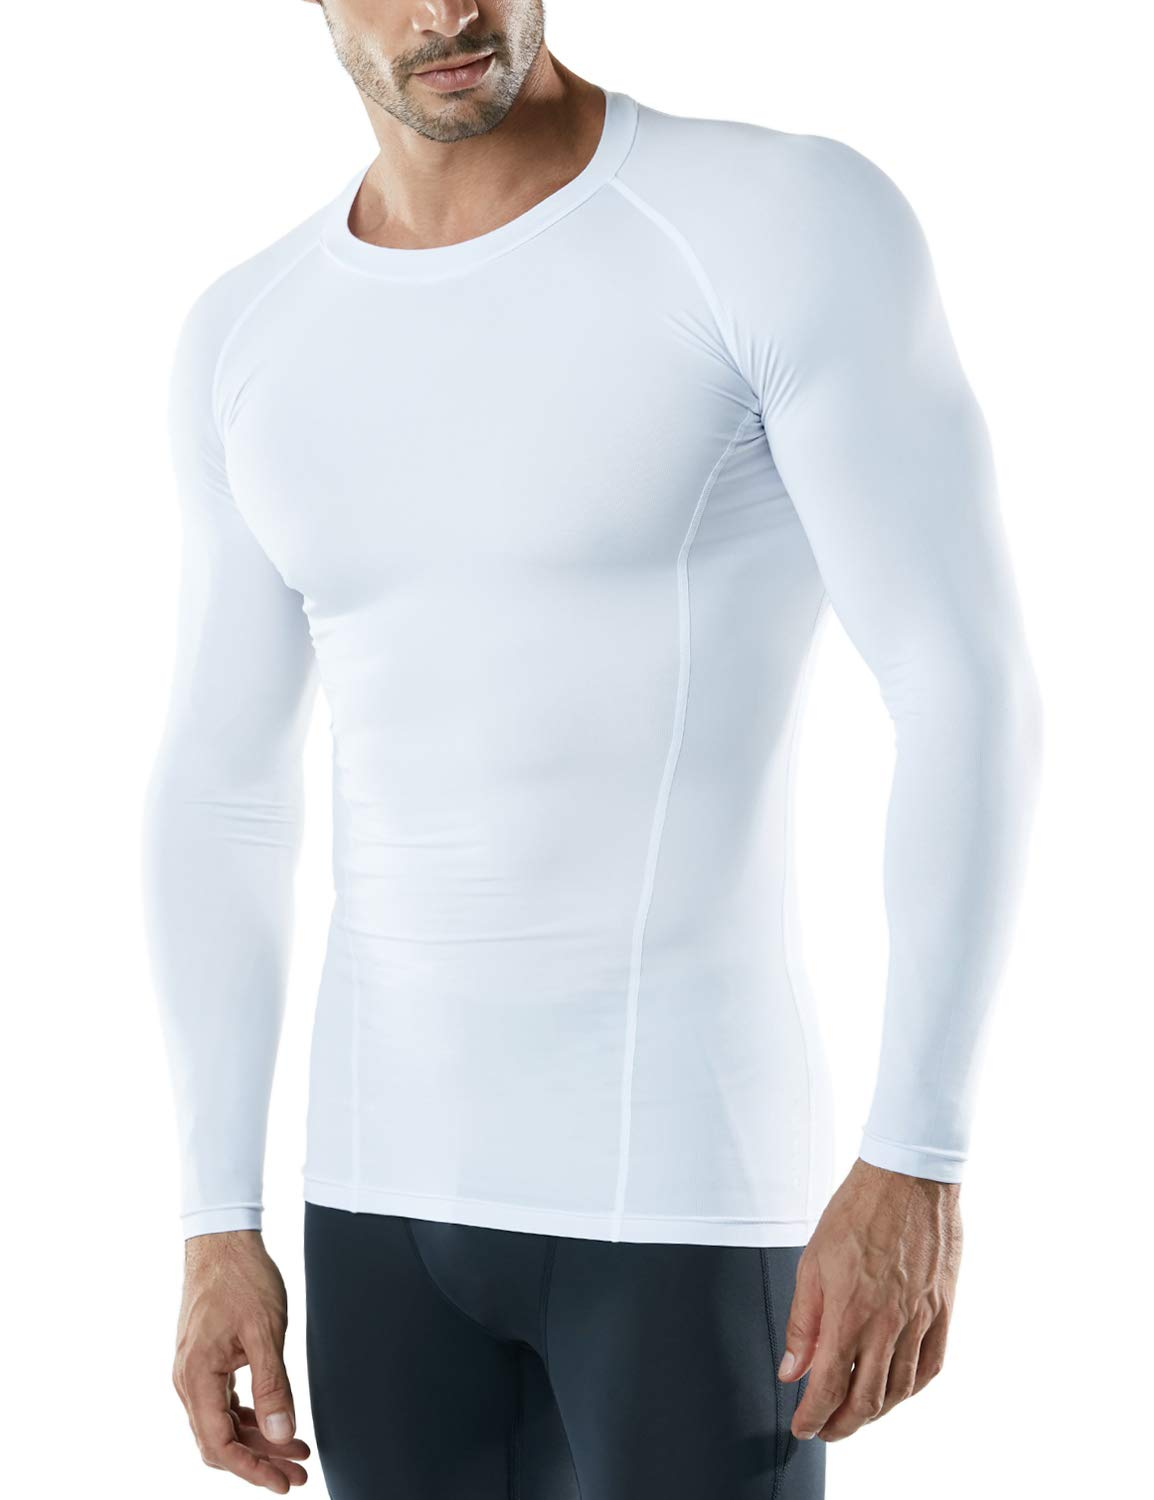 Athletic Workout Shirt Active Sports Base Layer T-Shirt ATHLIO 3 Pack Mens Cool Dry Fit Long Sleeve Compression Shirts